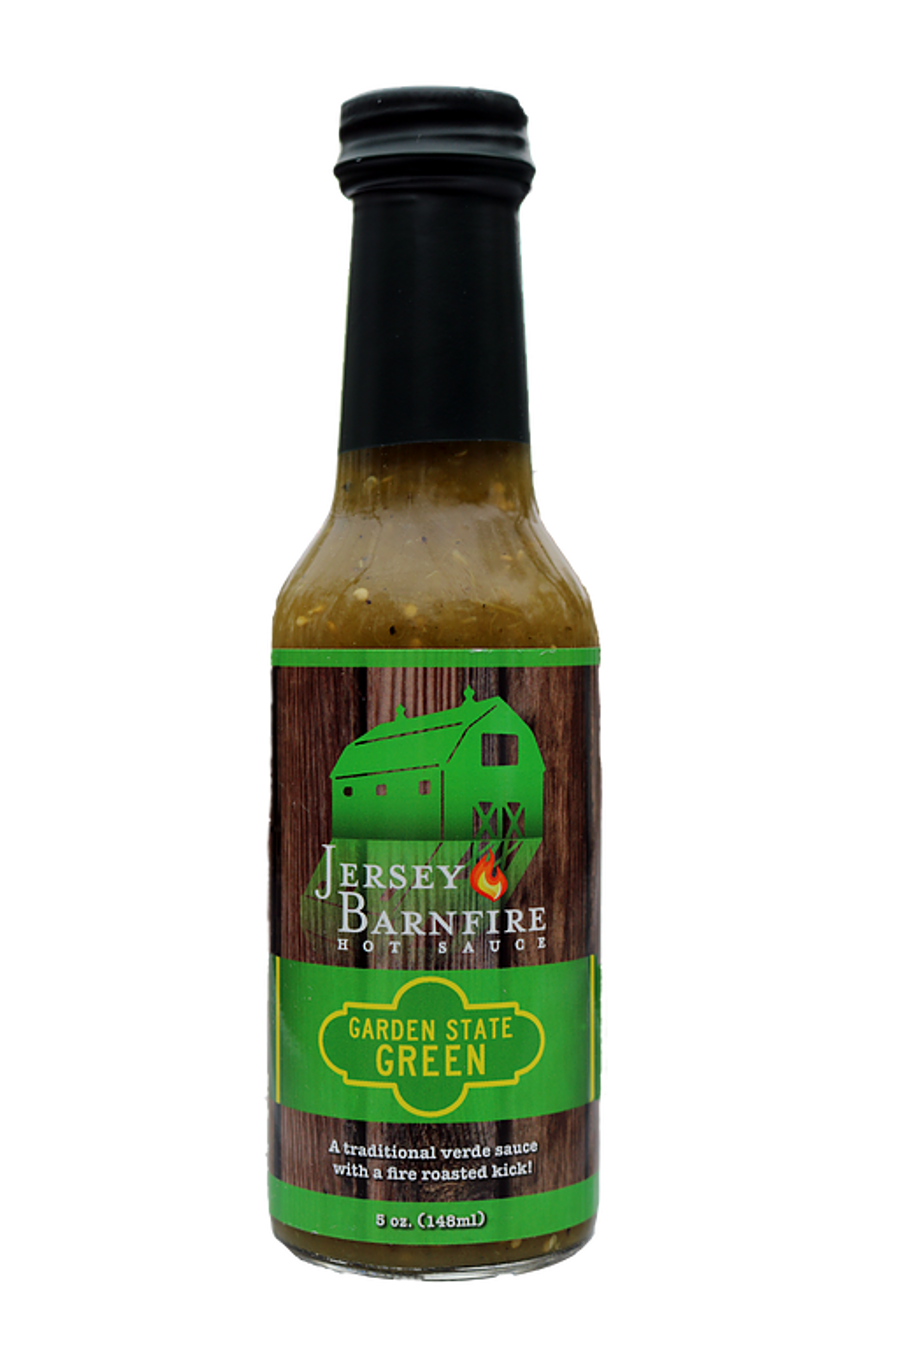 Jersey Barnfire Garden State Green is available online at Pepper Explosion